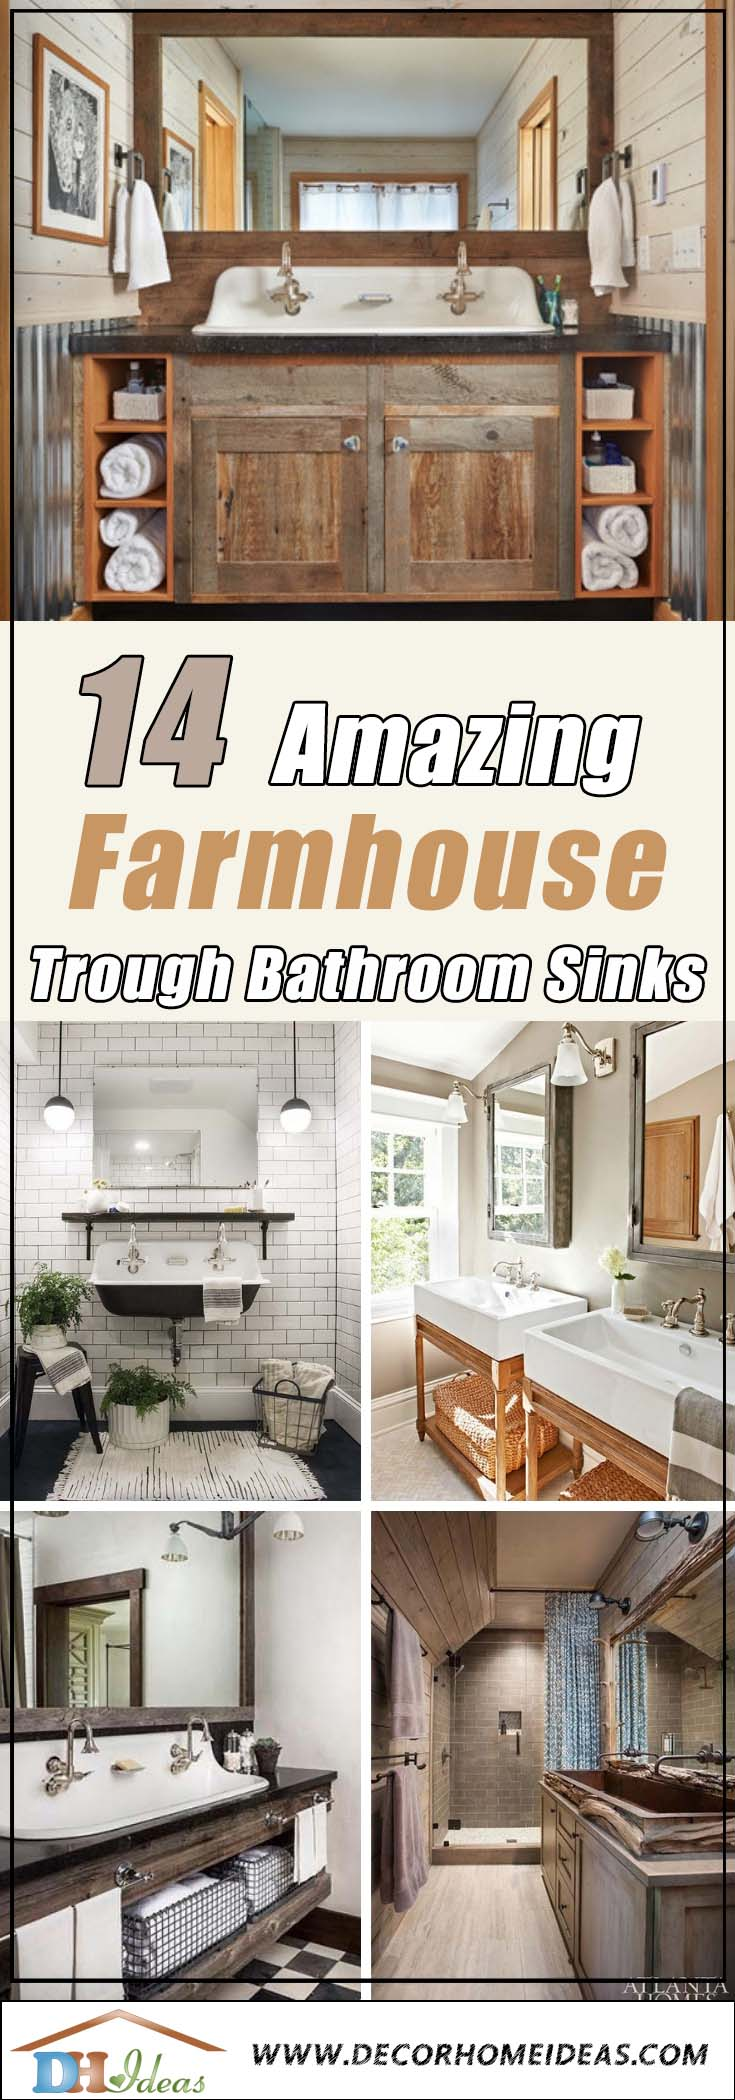 Farmhouse Trough Bathroom Sink